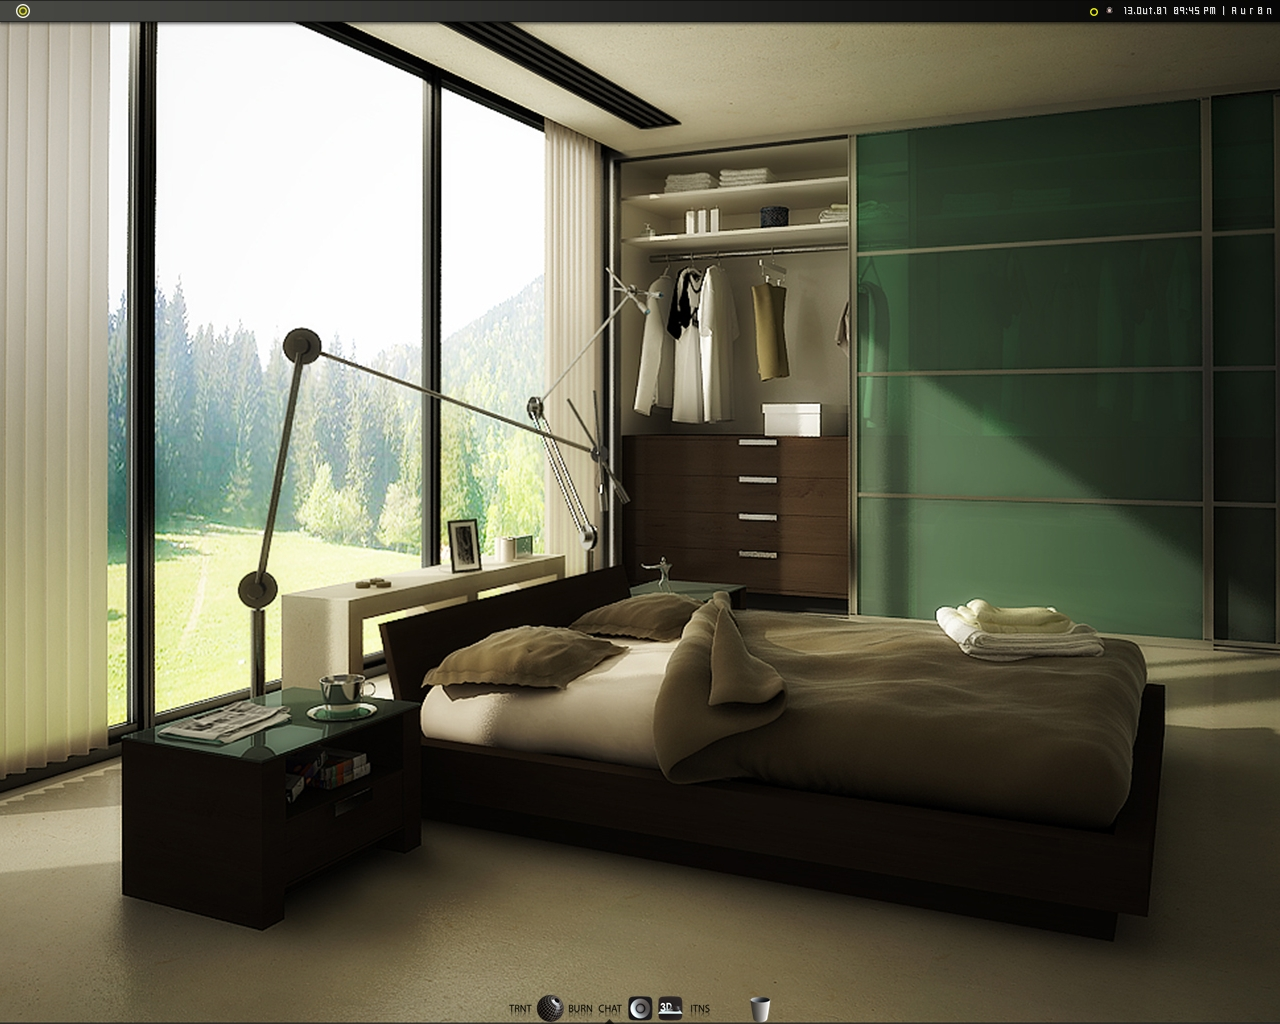 bringing the outdoors into a modern bedroom by rw4n